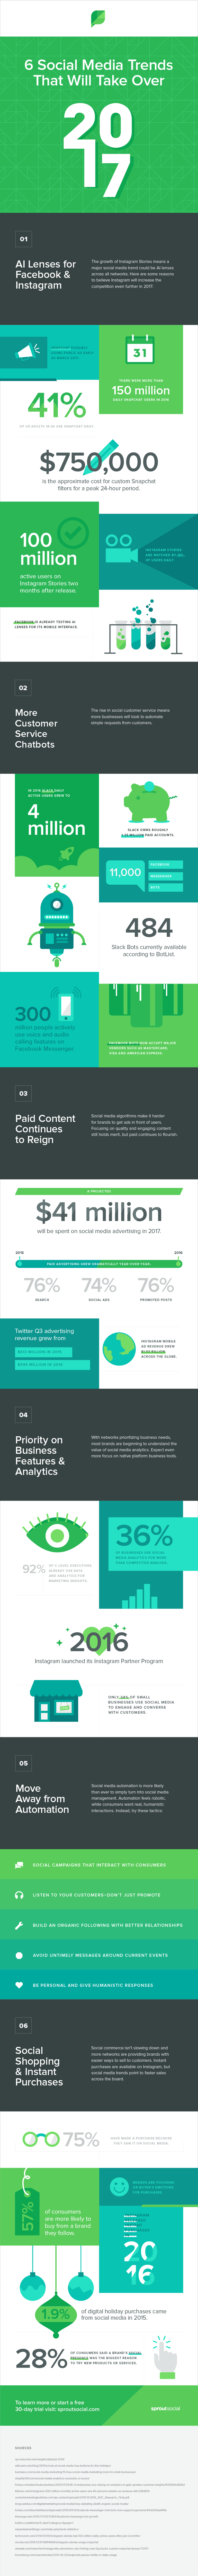 social media trends 2017 infographic